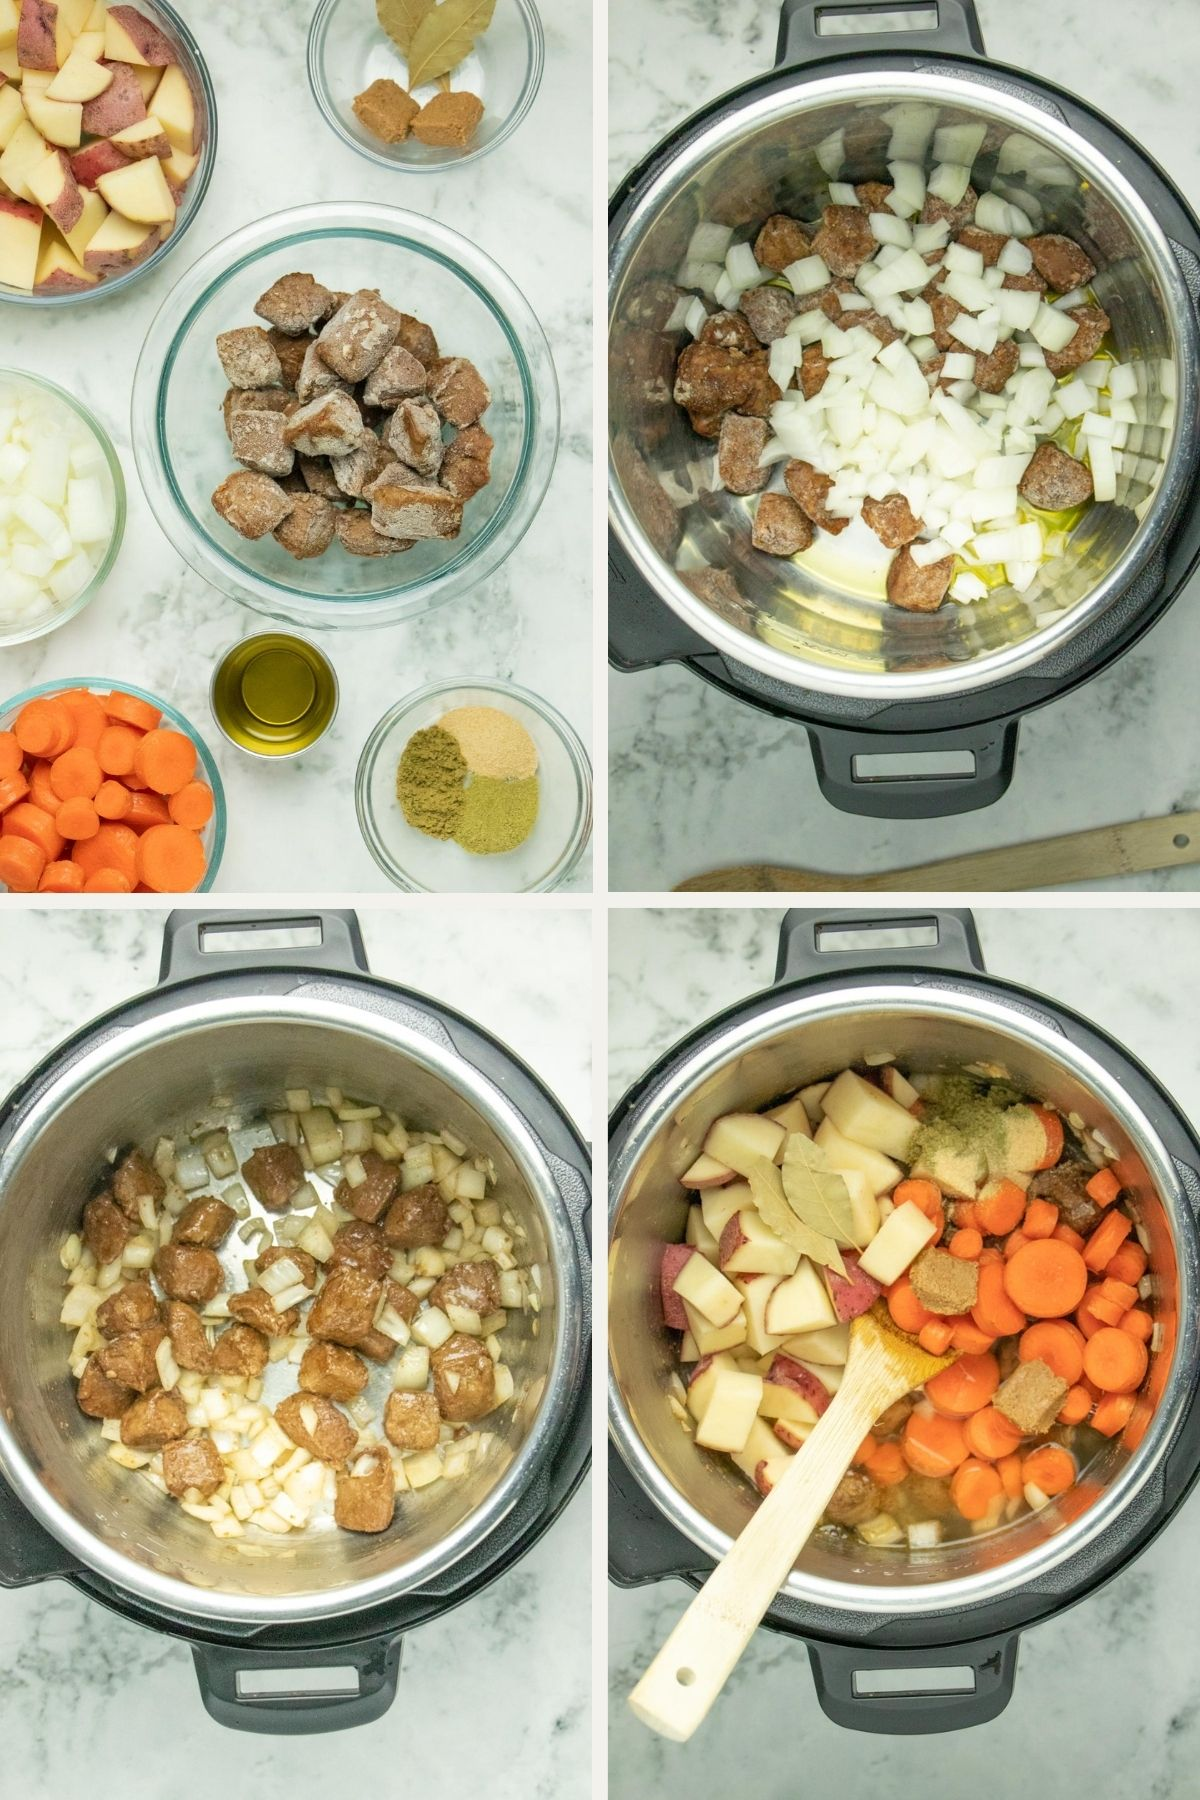 image collage of ingredients and cooking the stew in an Instant Pot